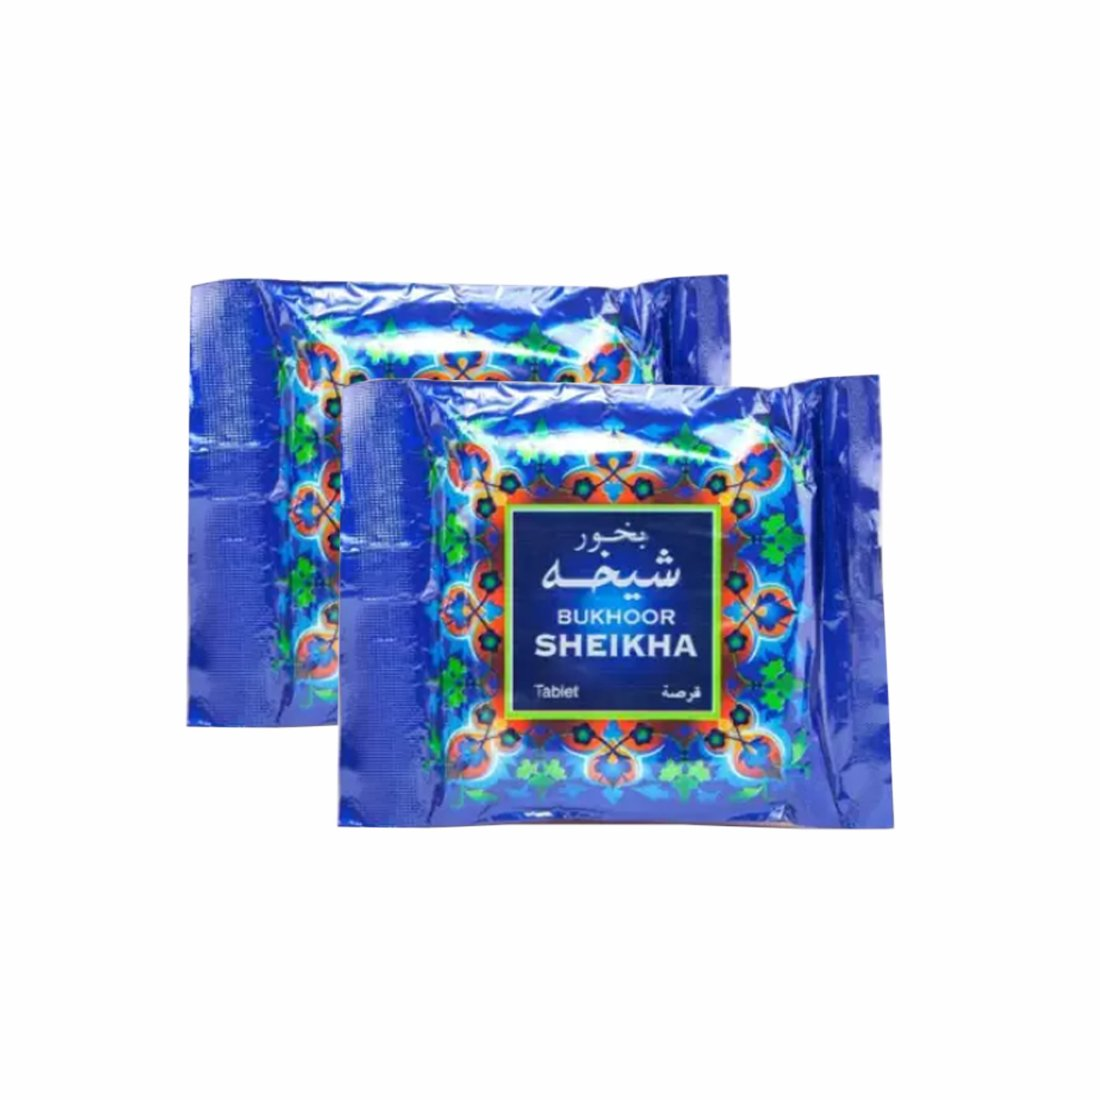 Al Haramain Bukhoor Sheikha Bakhoor Burners Fragrance Paste Pack of 2